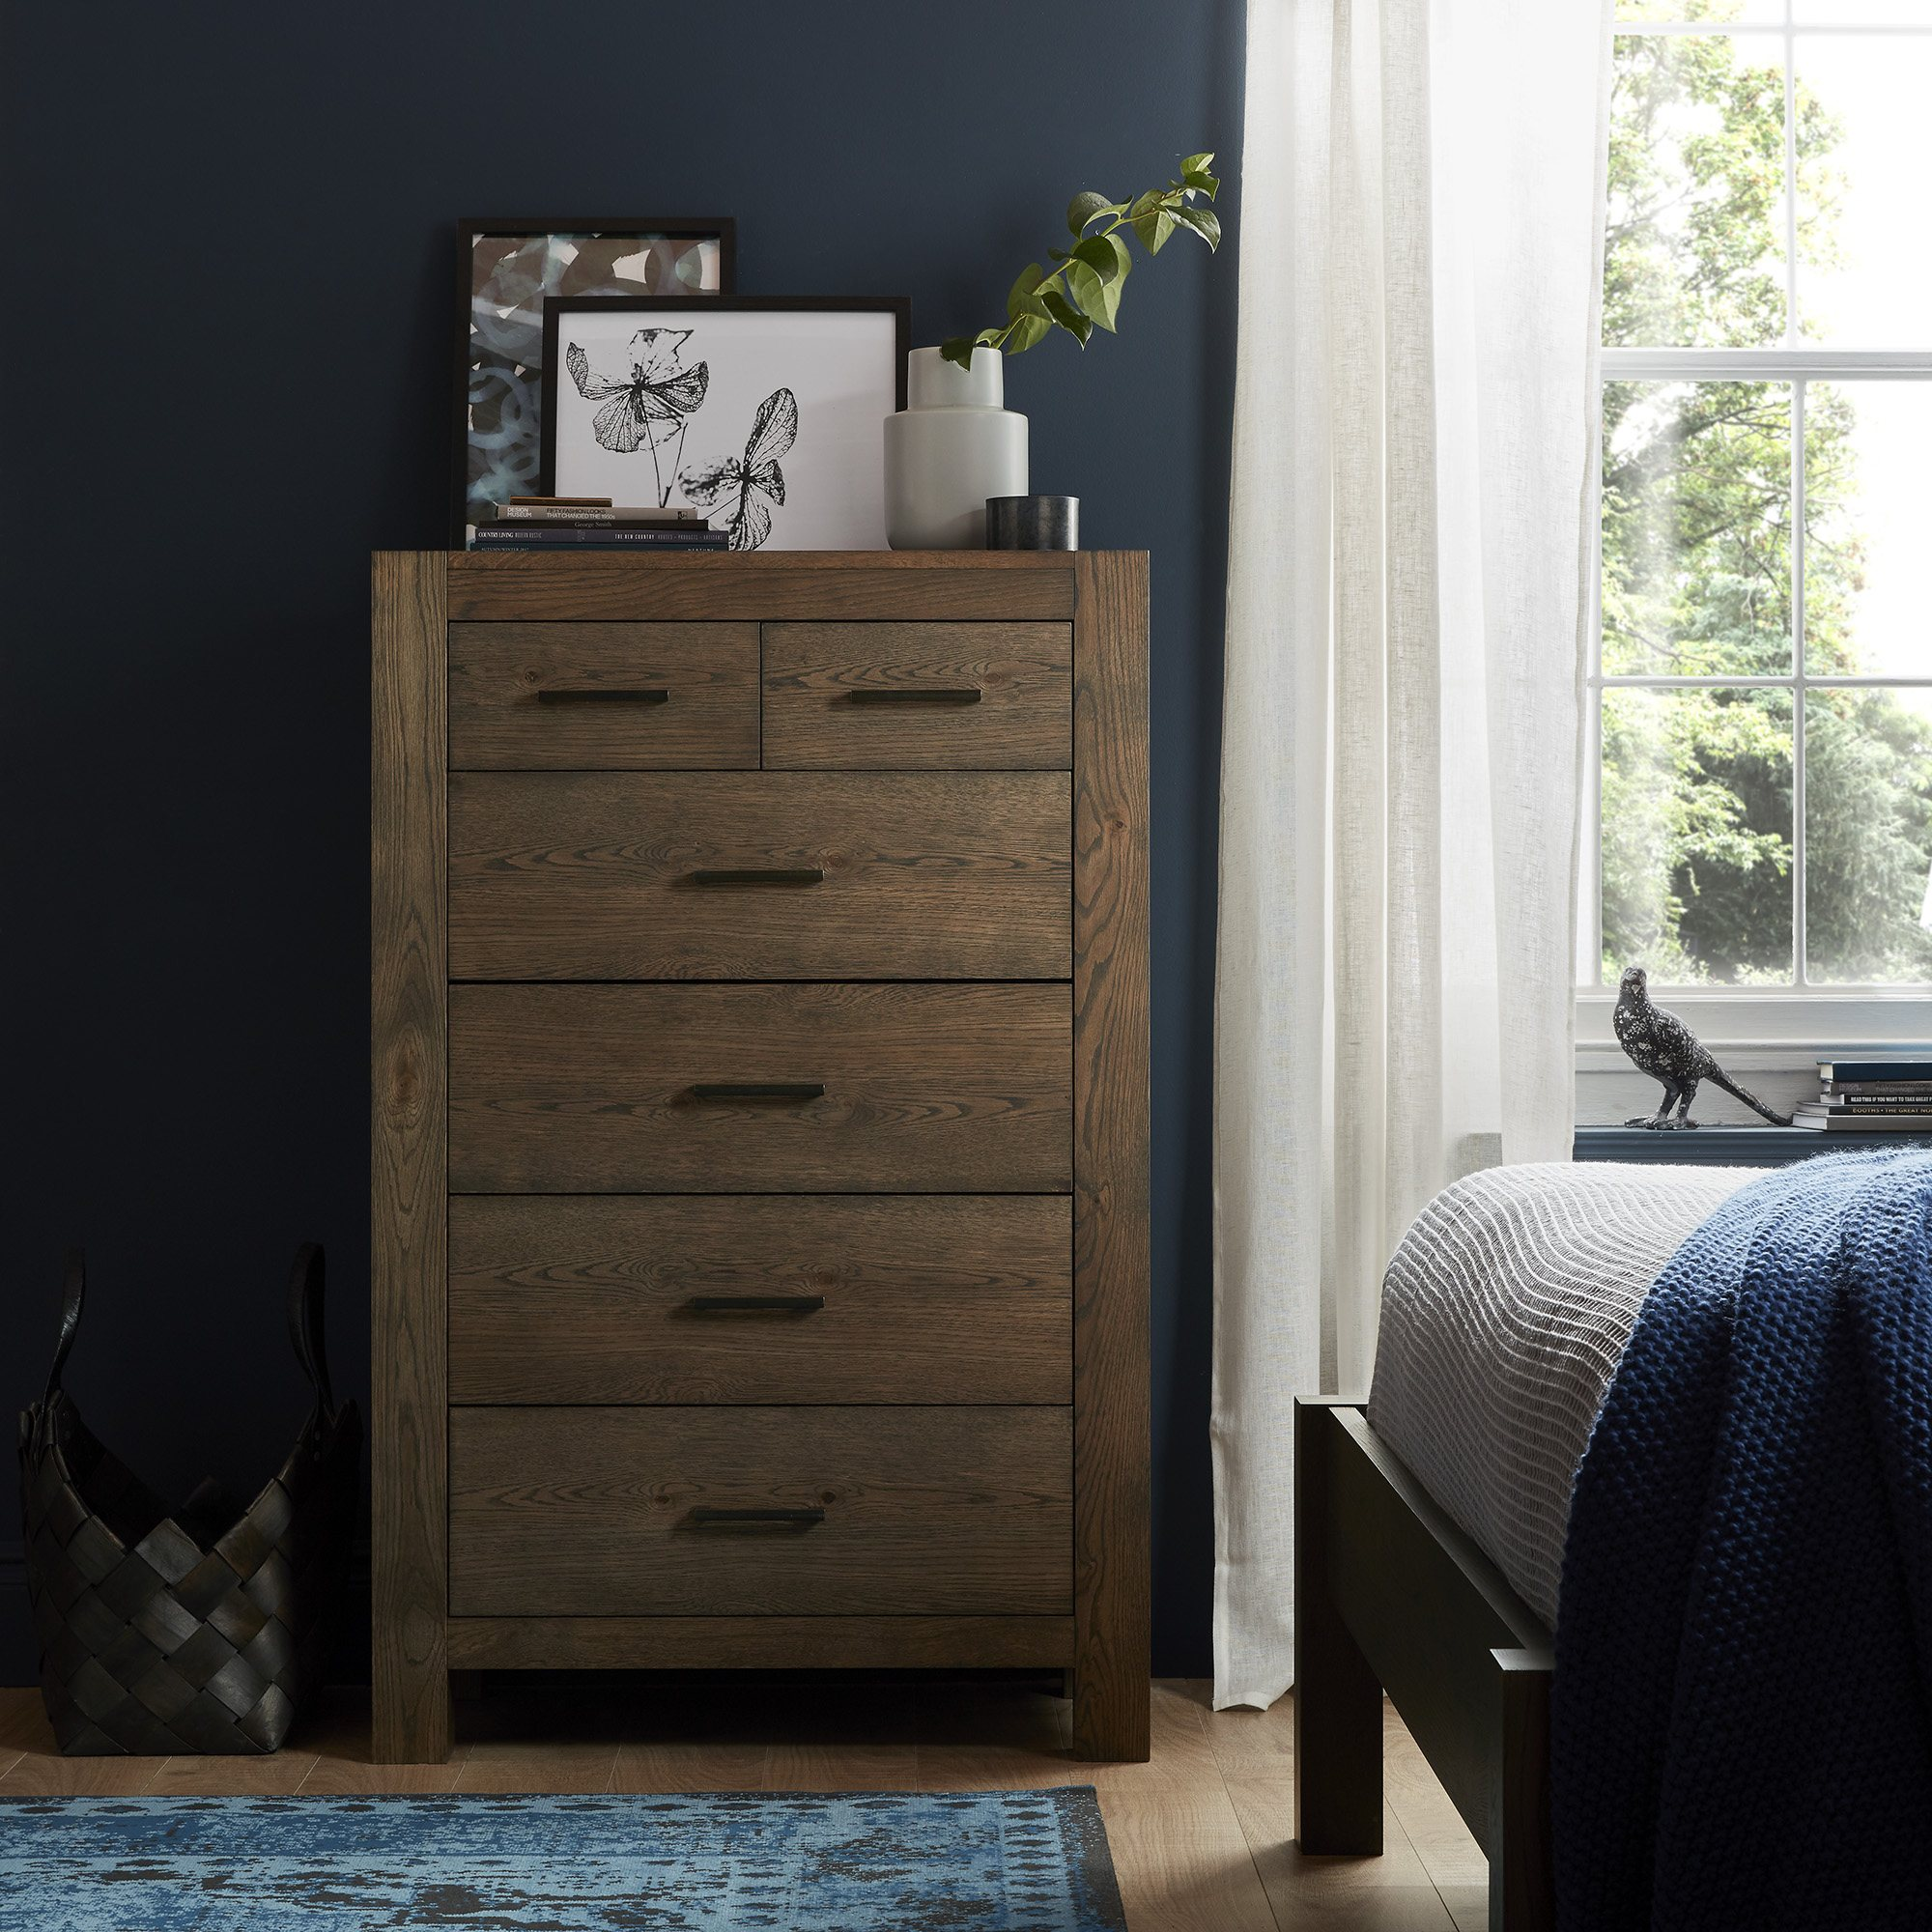 LILLE DARK OAK TALL CHEST - L83cm x D47cm x H129cm